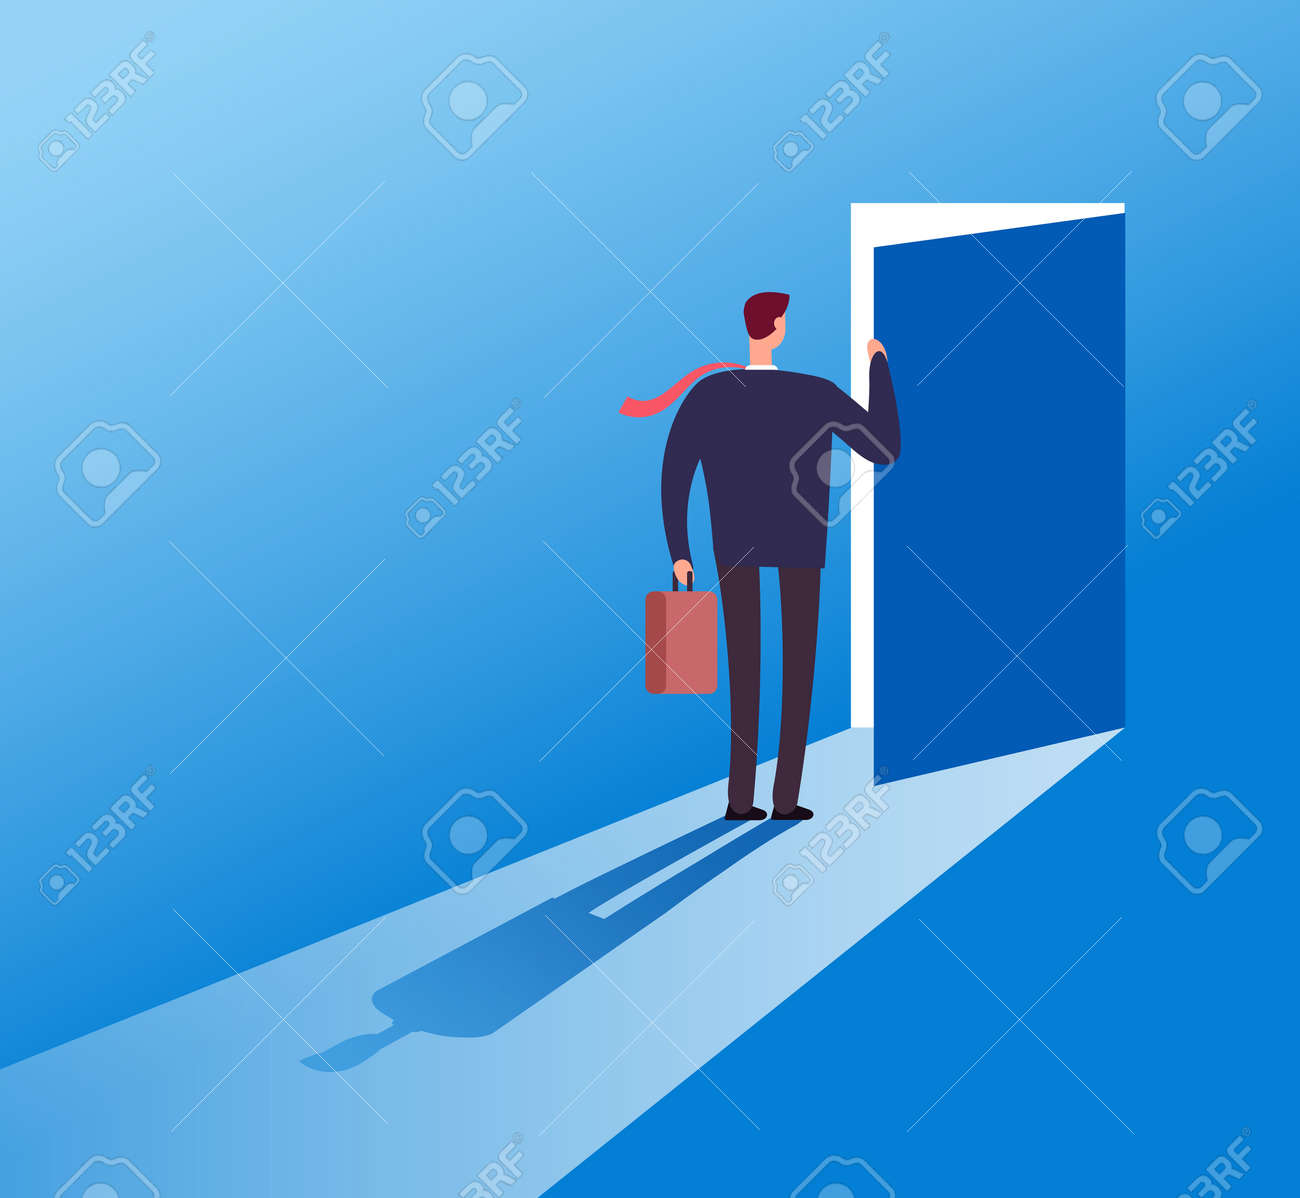 Businessman opening secret door. Opportunity, accessible entering. Risk solution and leadership business vector concept. Illustration of businessman open door secret, leadership challenge opportunity - 168211814